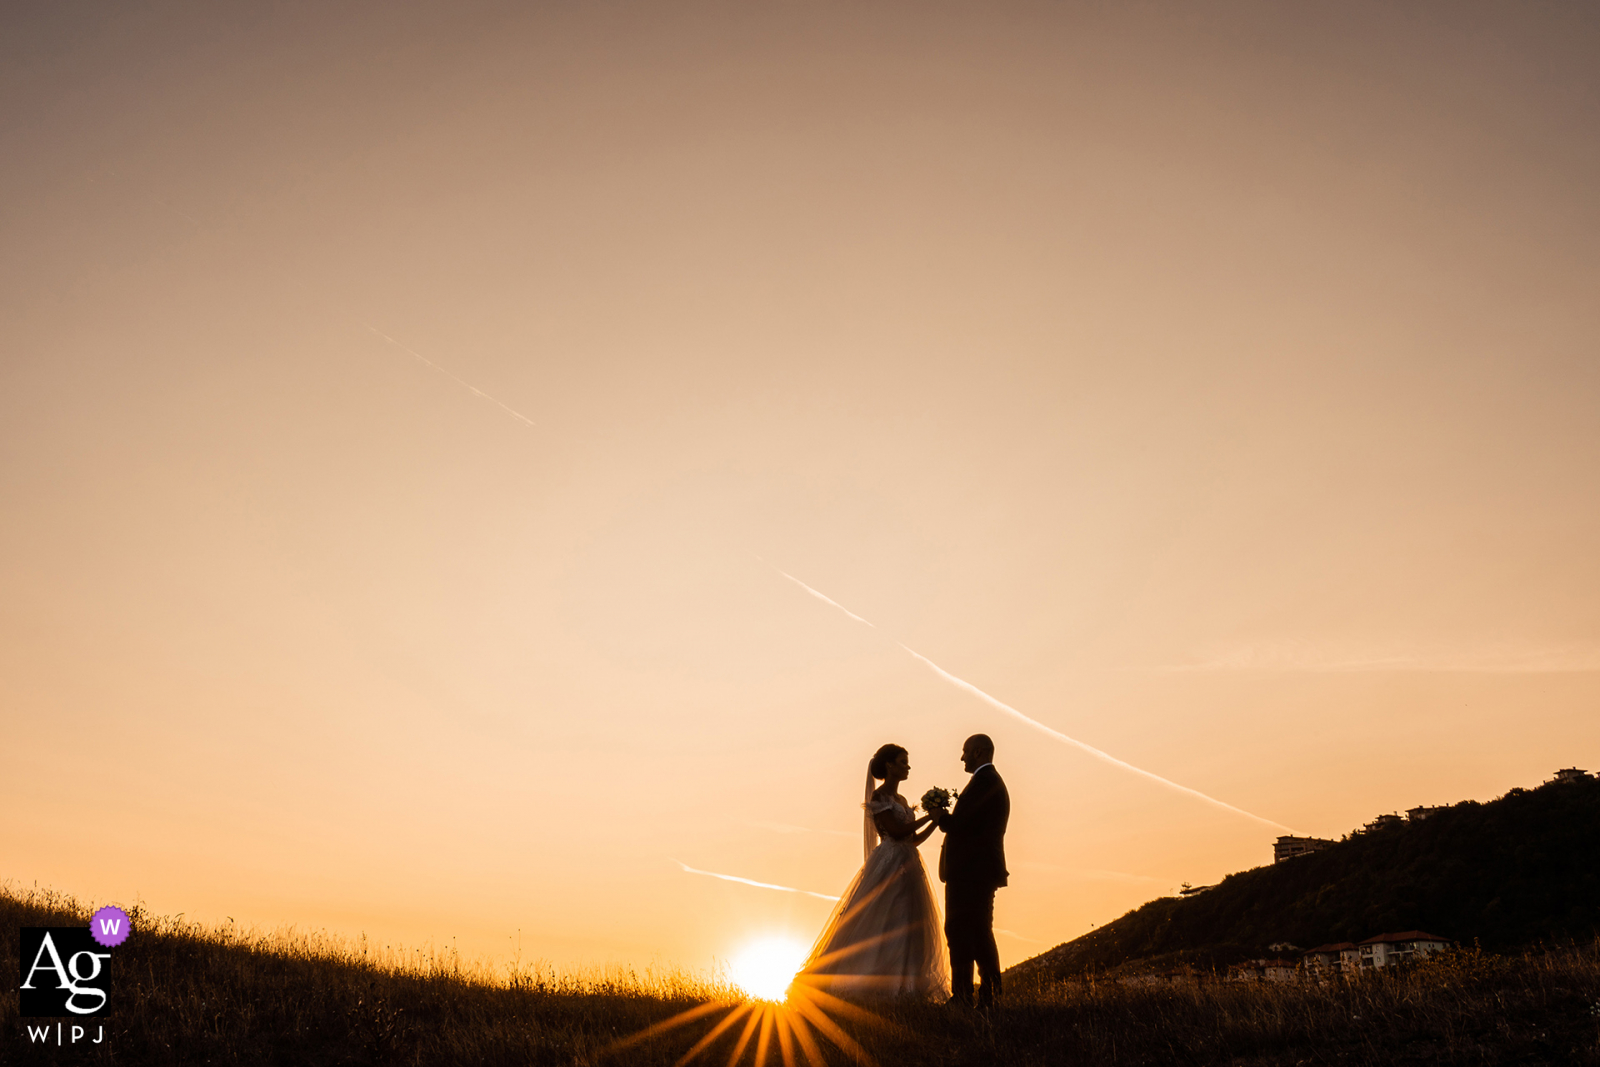 Thracian Cliffs Resort, Kavarna, Bulgaria creative wedding day portrait against a wonderful sunset for the newlyweds to go outside and take that lovely sun